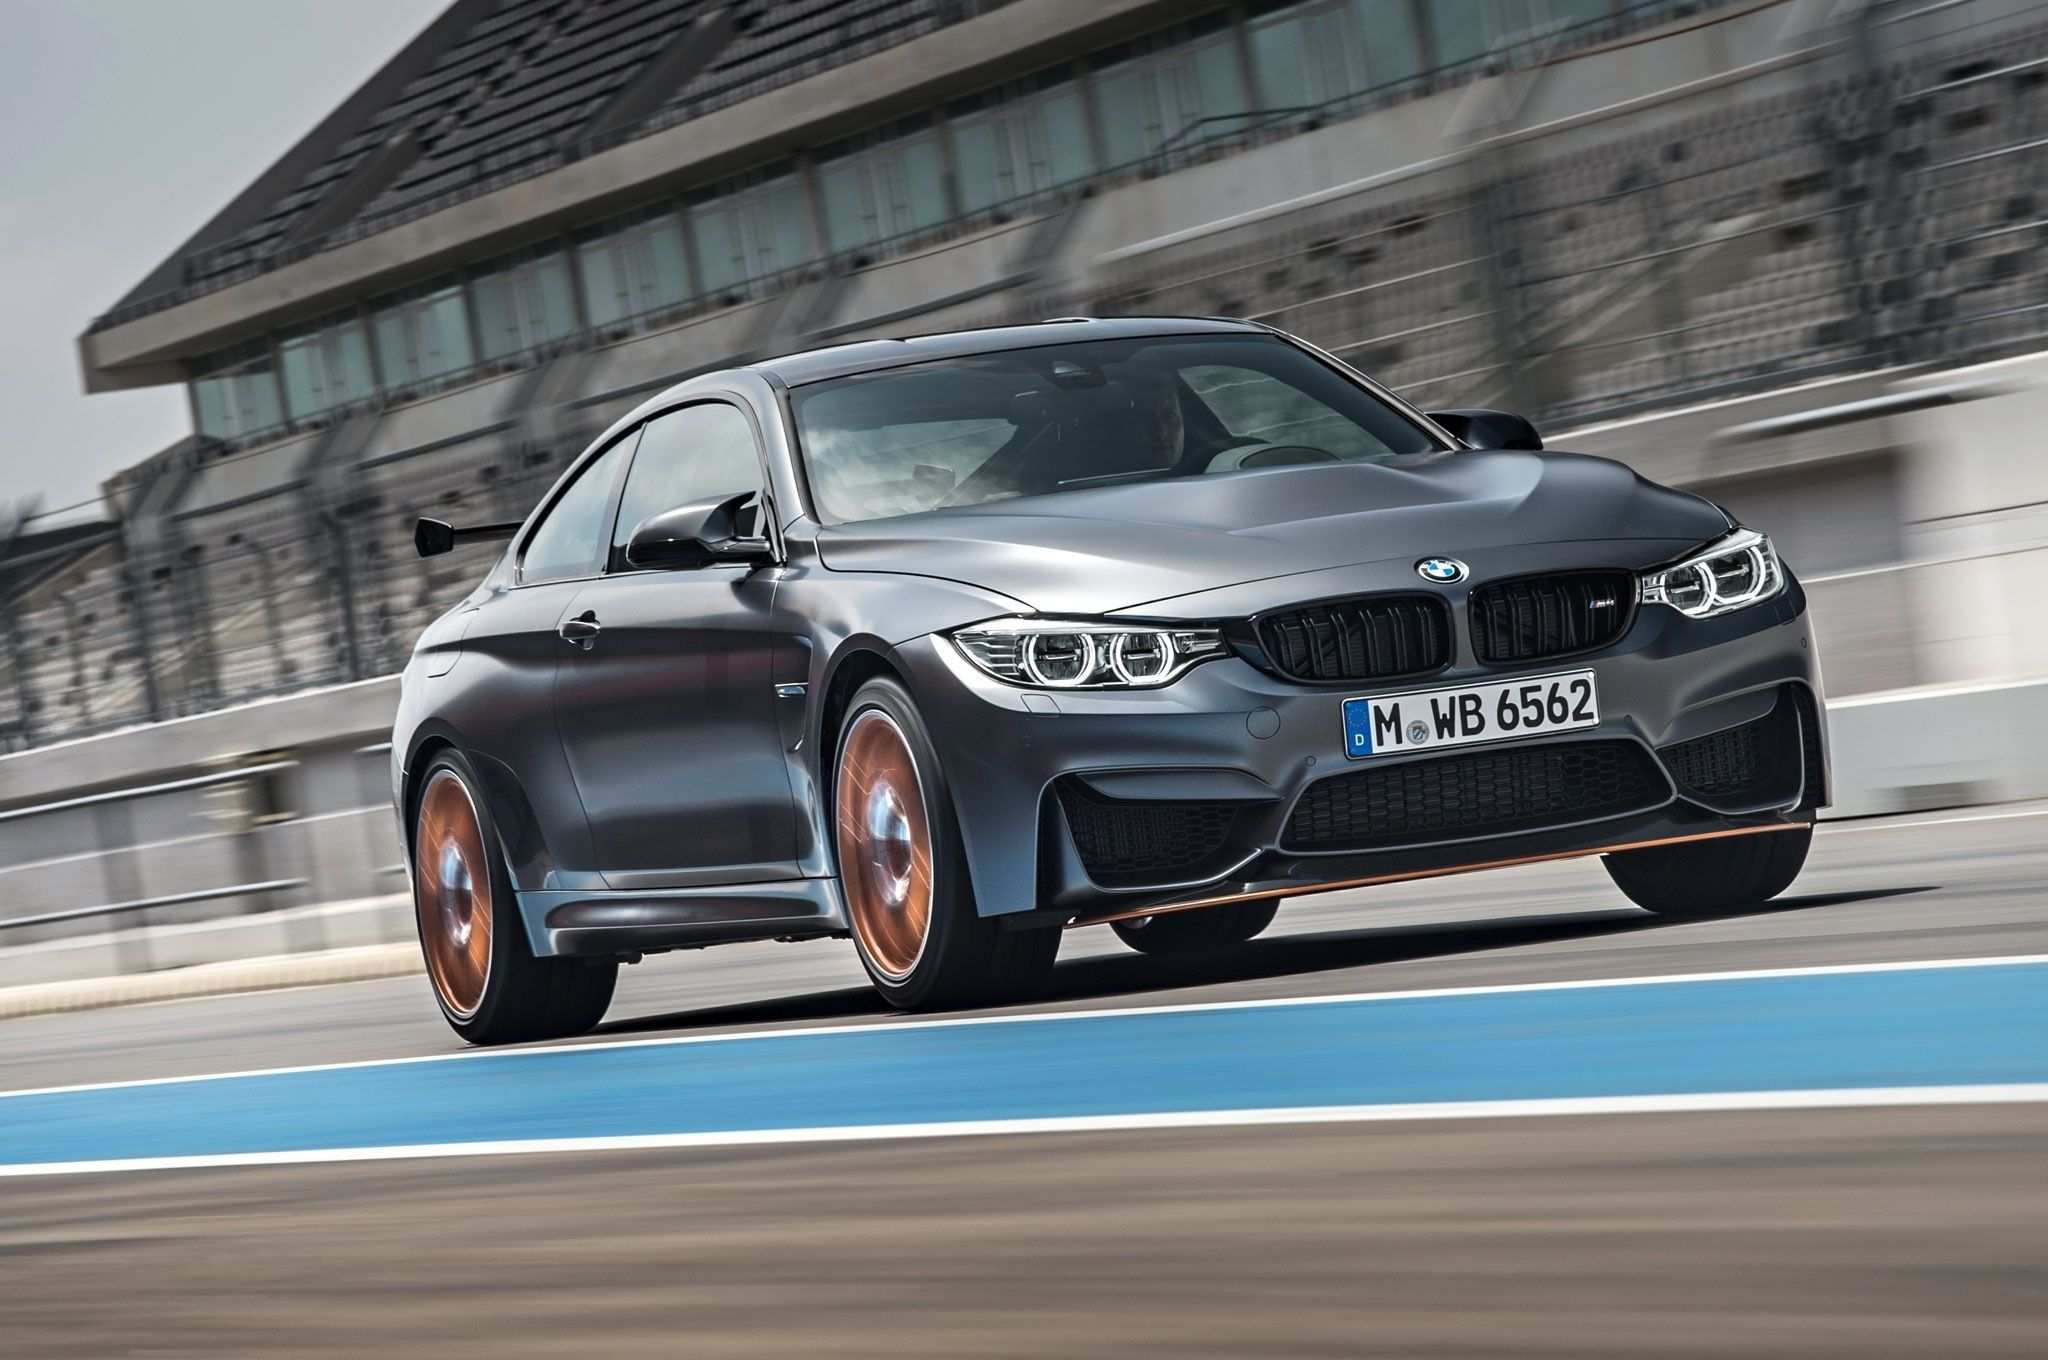 16 A 2019 BMW M4 Gts New Review